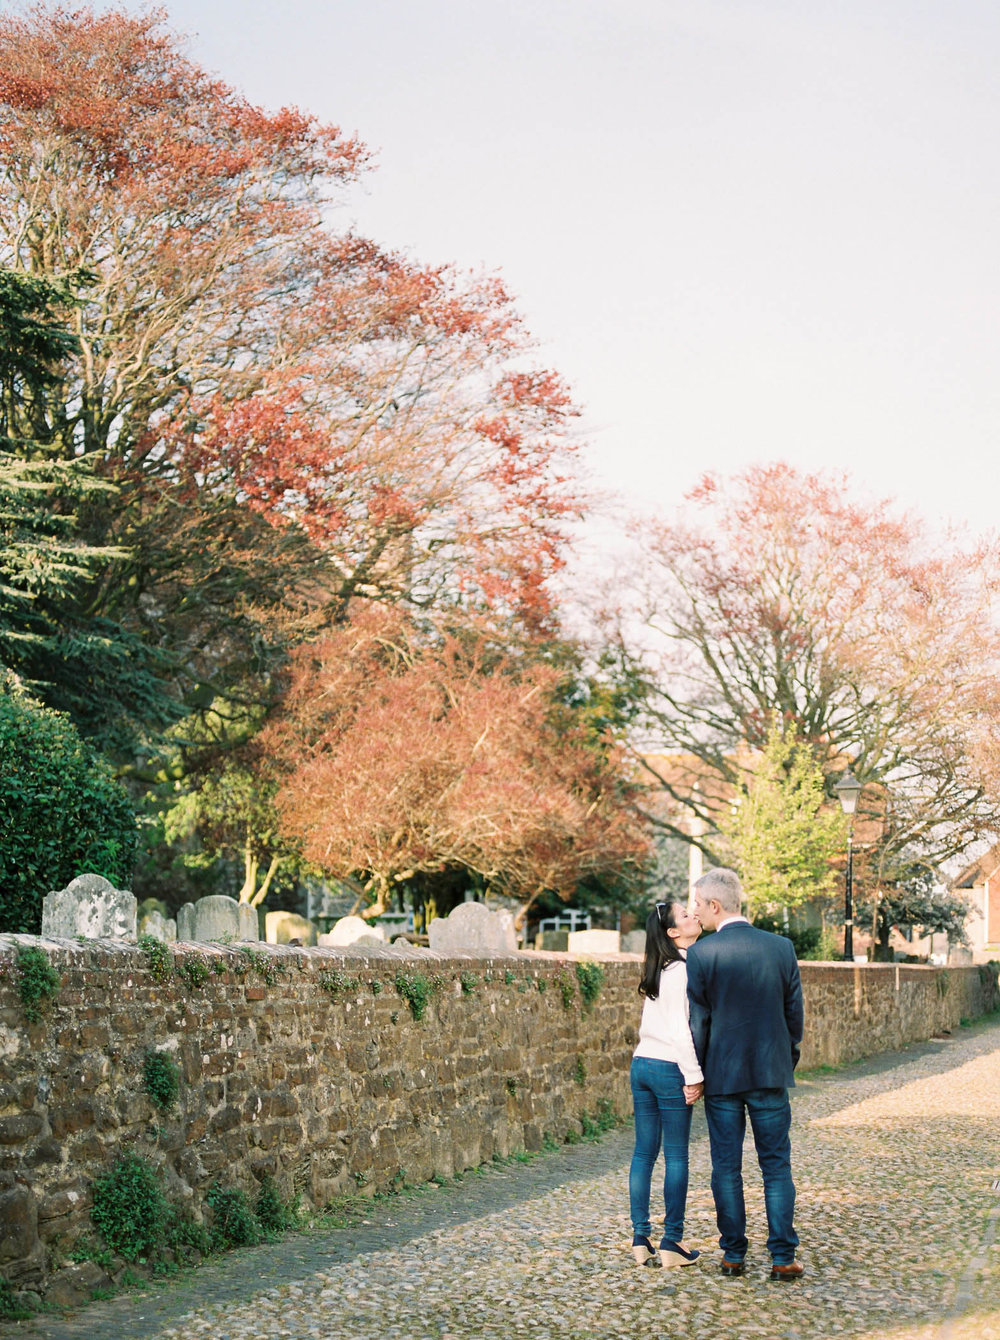 Amy O'Boyle Photography- Destination & UK Fine Art Film Wedding Photographer- Rye Engagement Shoot-6.jpg